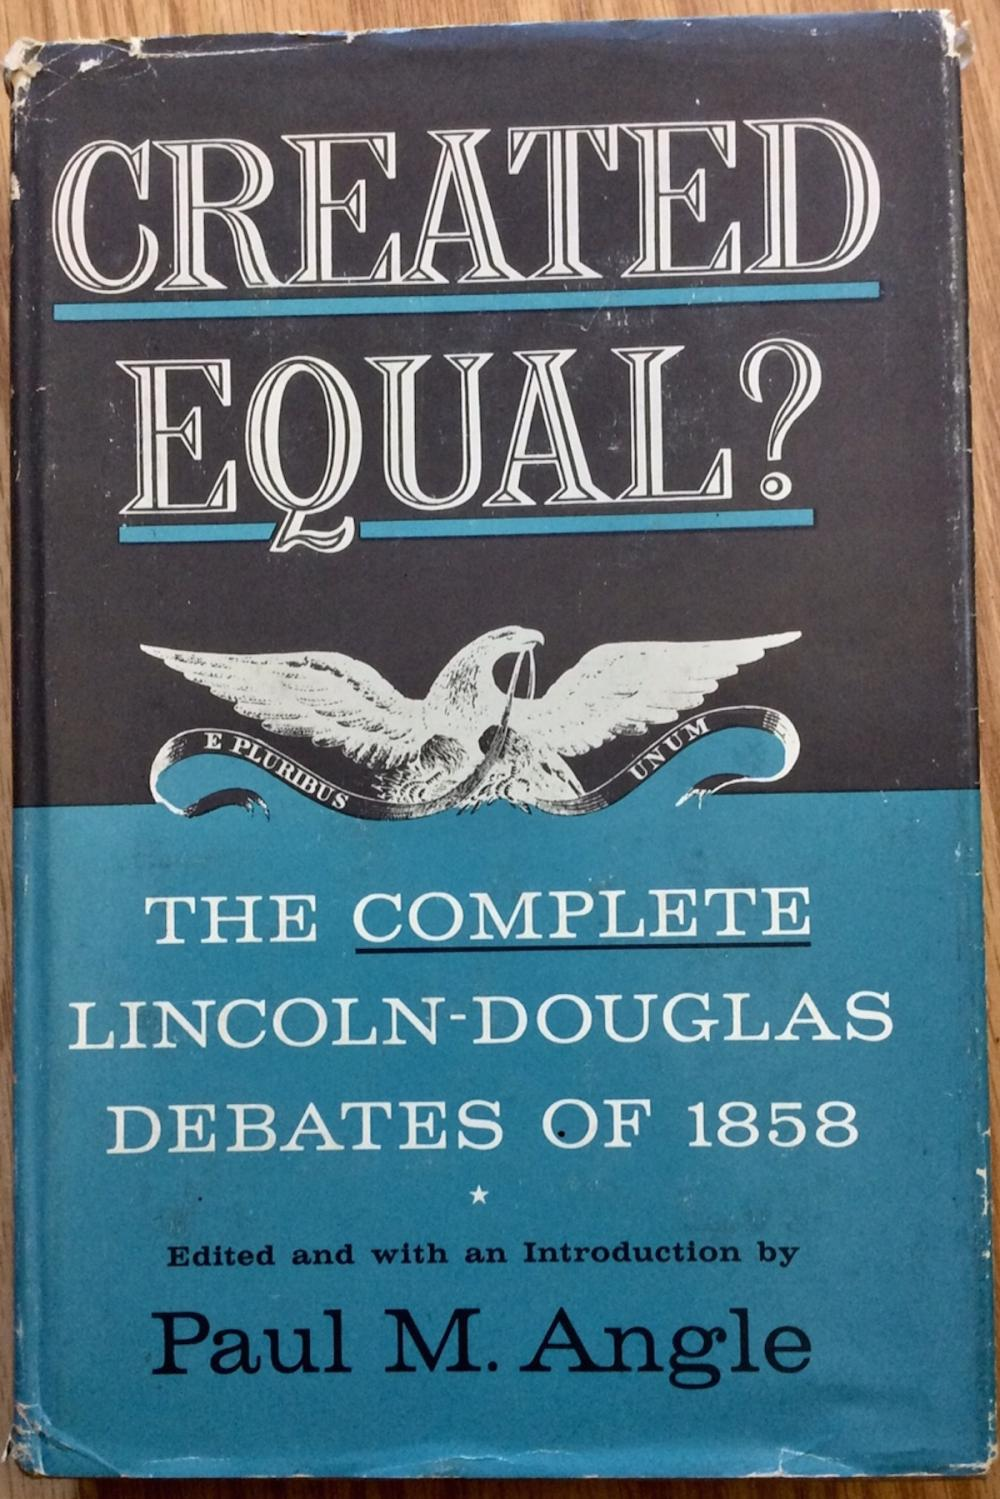 """Created Equal?: The Complete Lincoln-Douglas Debates Of 1958"" edited by Paul Angle VINTAGE 1858 Hardcover History Of Lincoln-Douglas Debates in DJ"